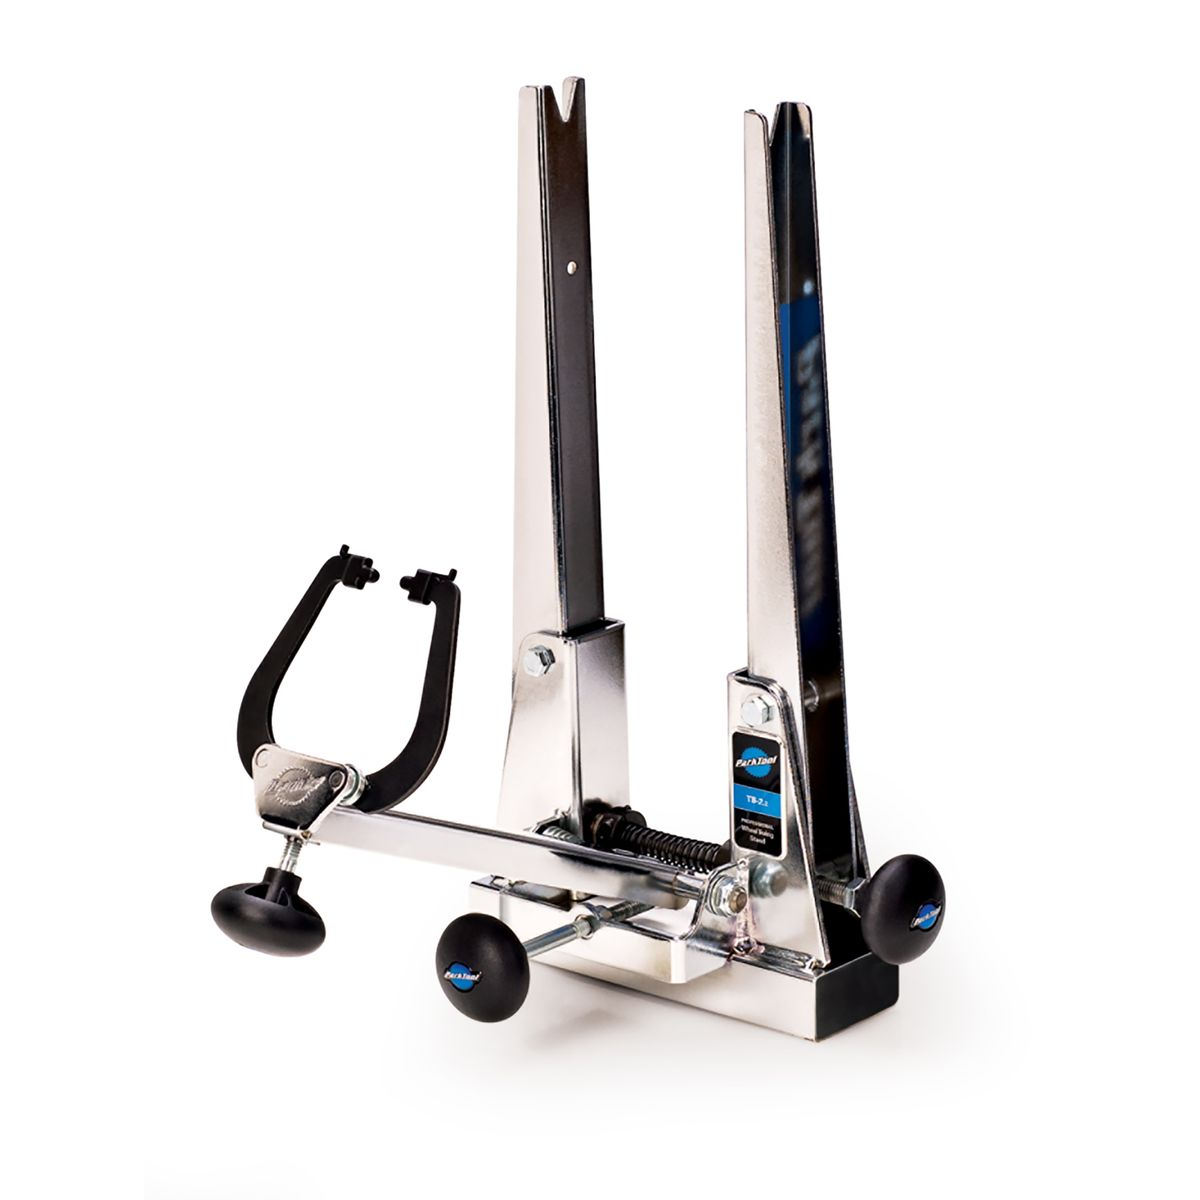 TS-2.2 professional wheel truing stand